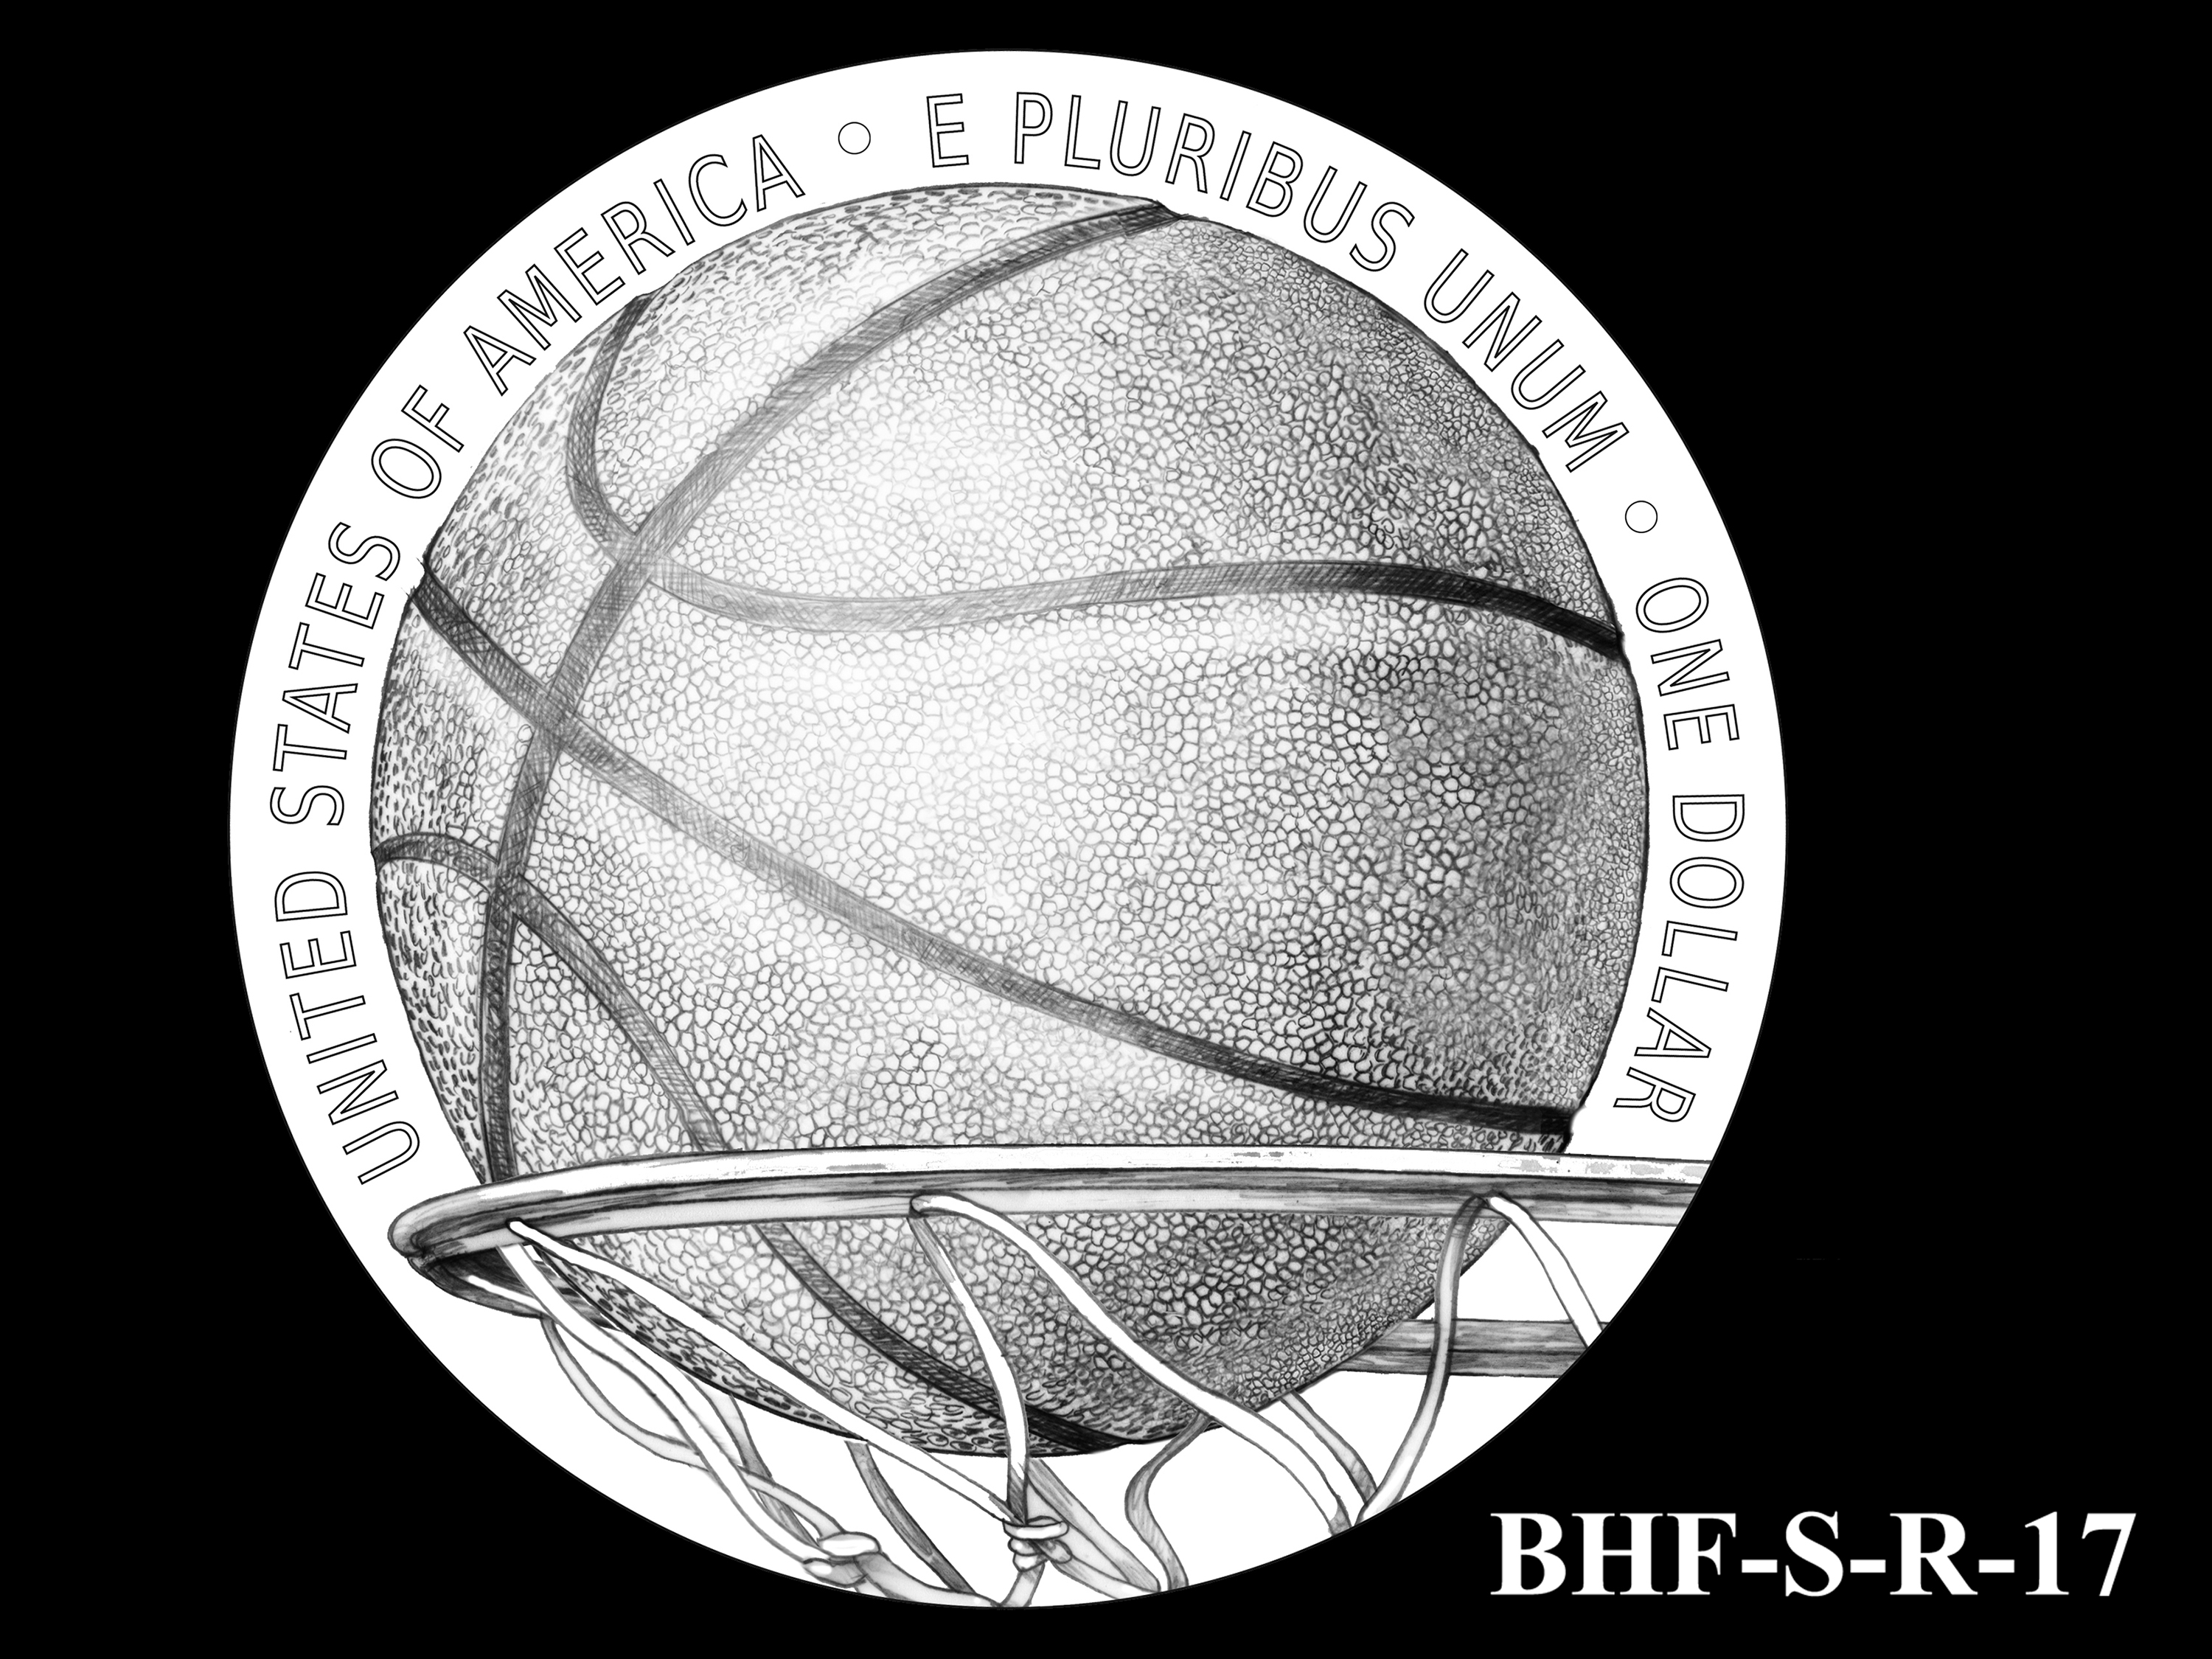 BHF-S-R-17 -- 2020 Basketball Hall of Fame Commemorative Coin Program - Silver Reverse